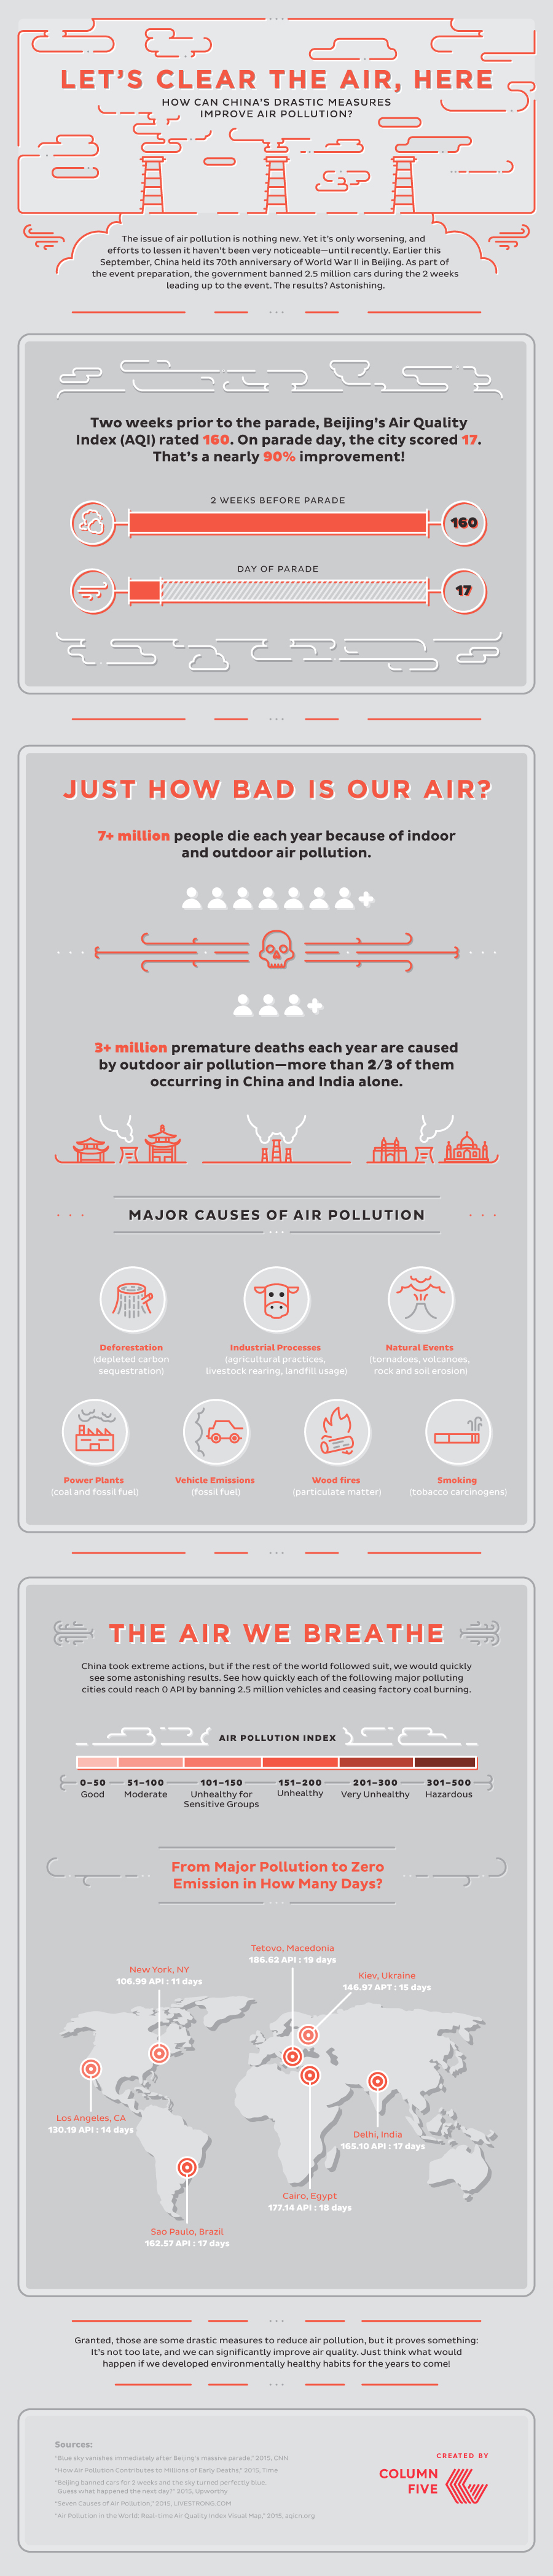 china's air pollution infographic